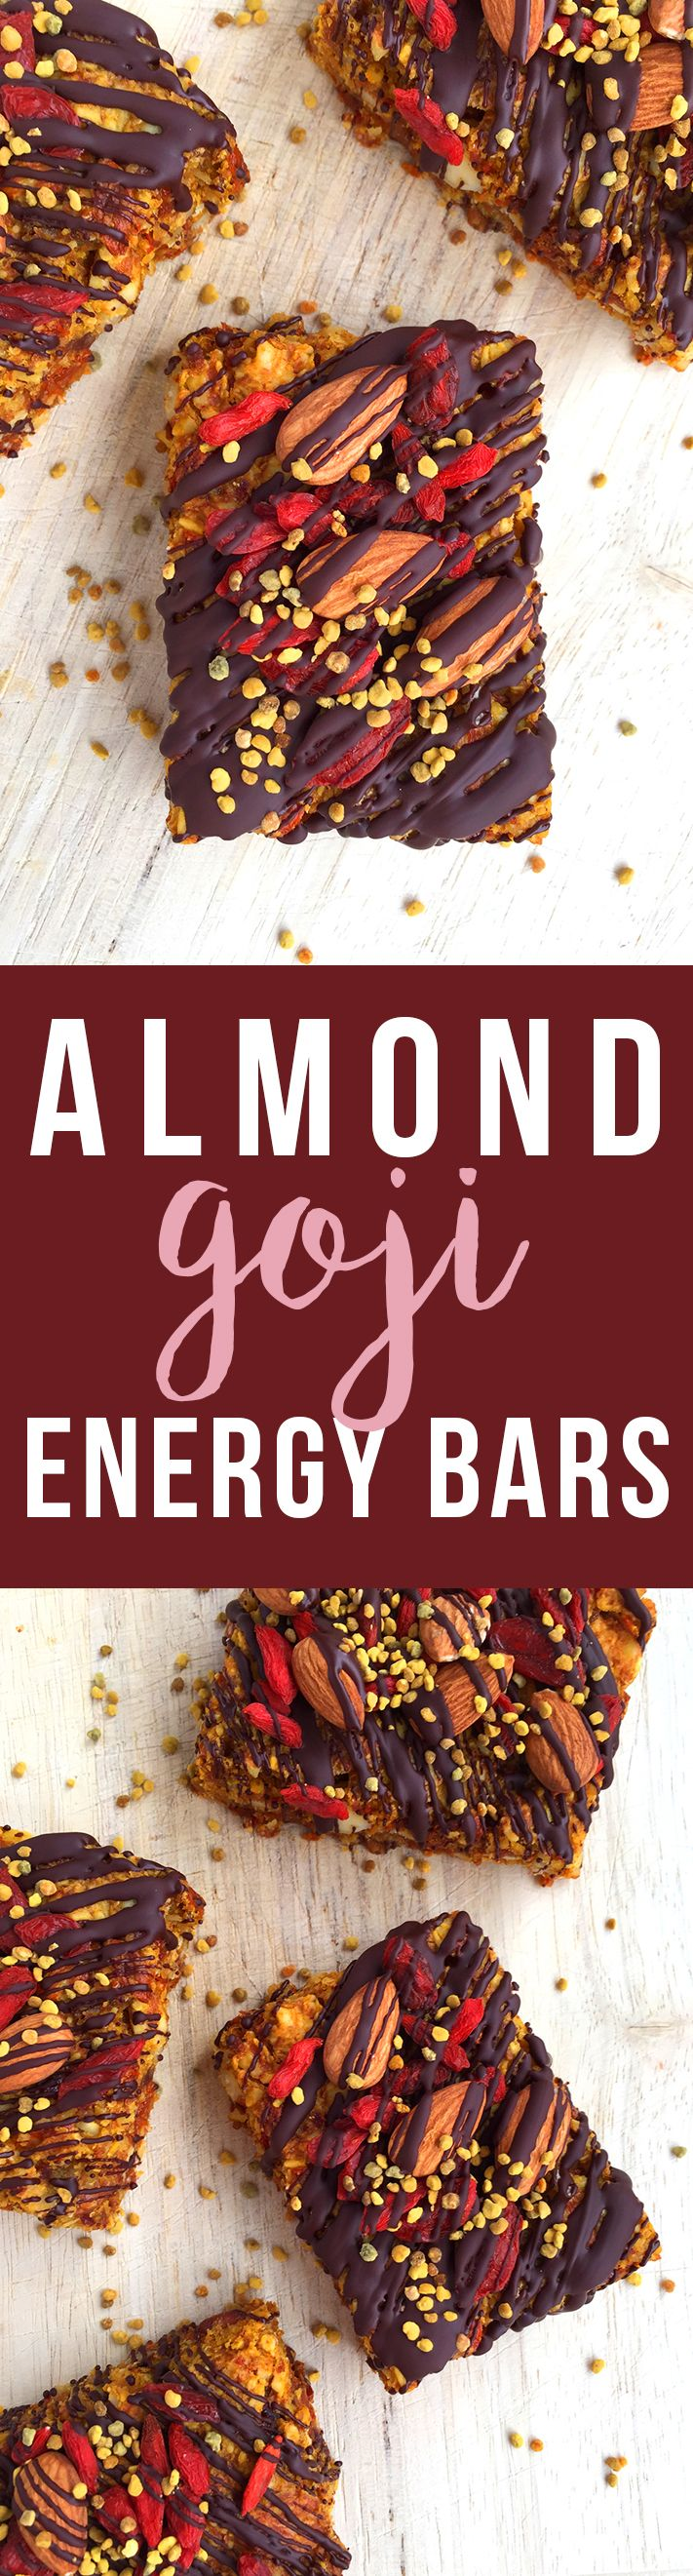 These grain-free Almond Goji Energy Bars are made of just nuts, fruit, coconut, eggs and love! (Drizzle with unsweetened chocolate if desired) | Fresh Planet Flavor